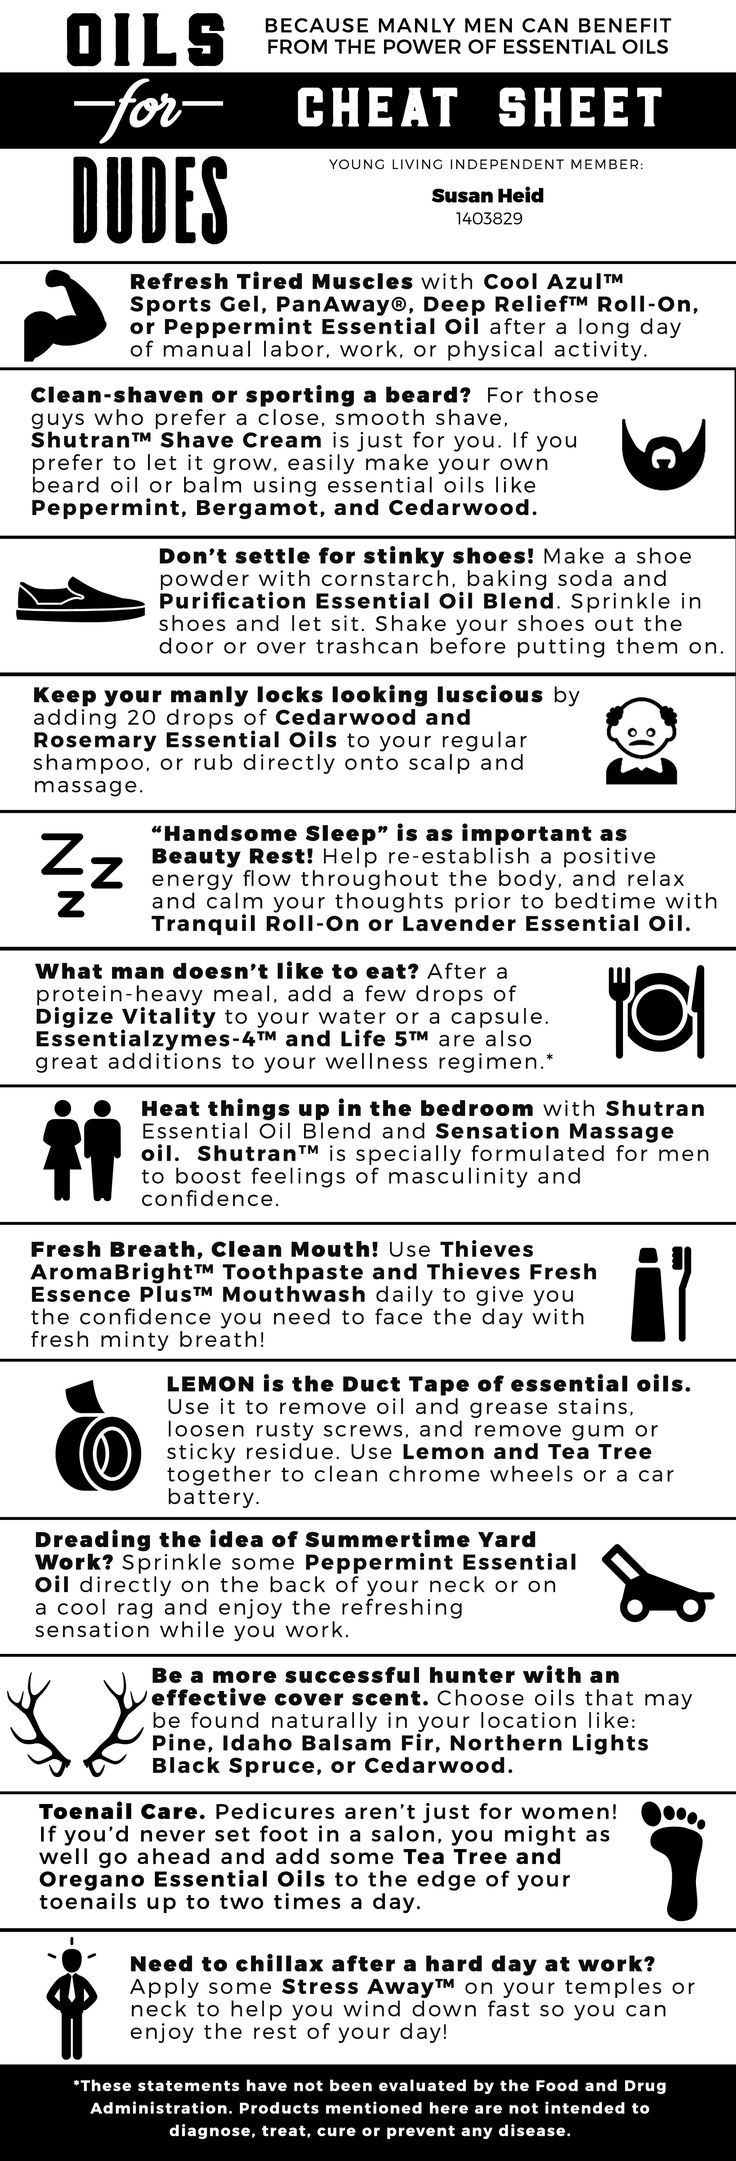 Oils for Dudes - Cheat Sheet - Young Living Essential Oils: